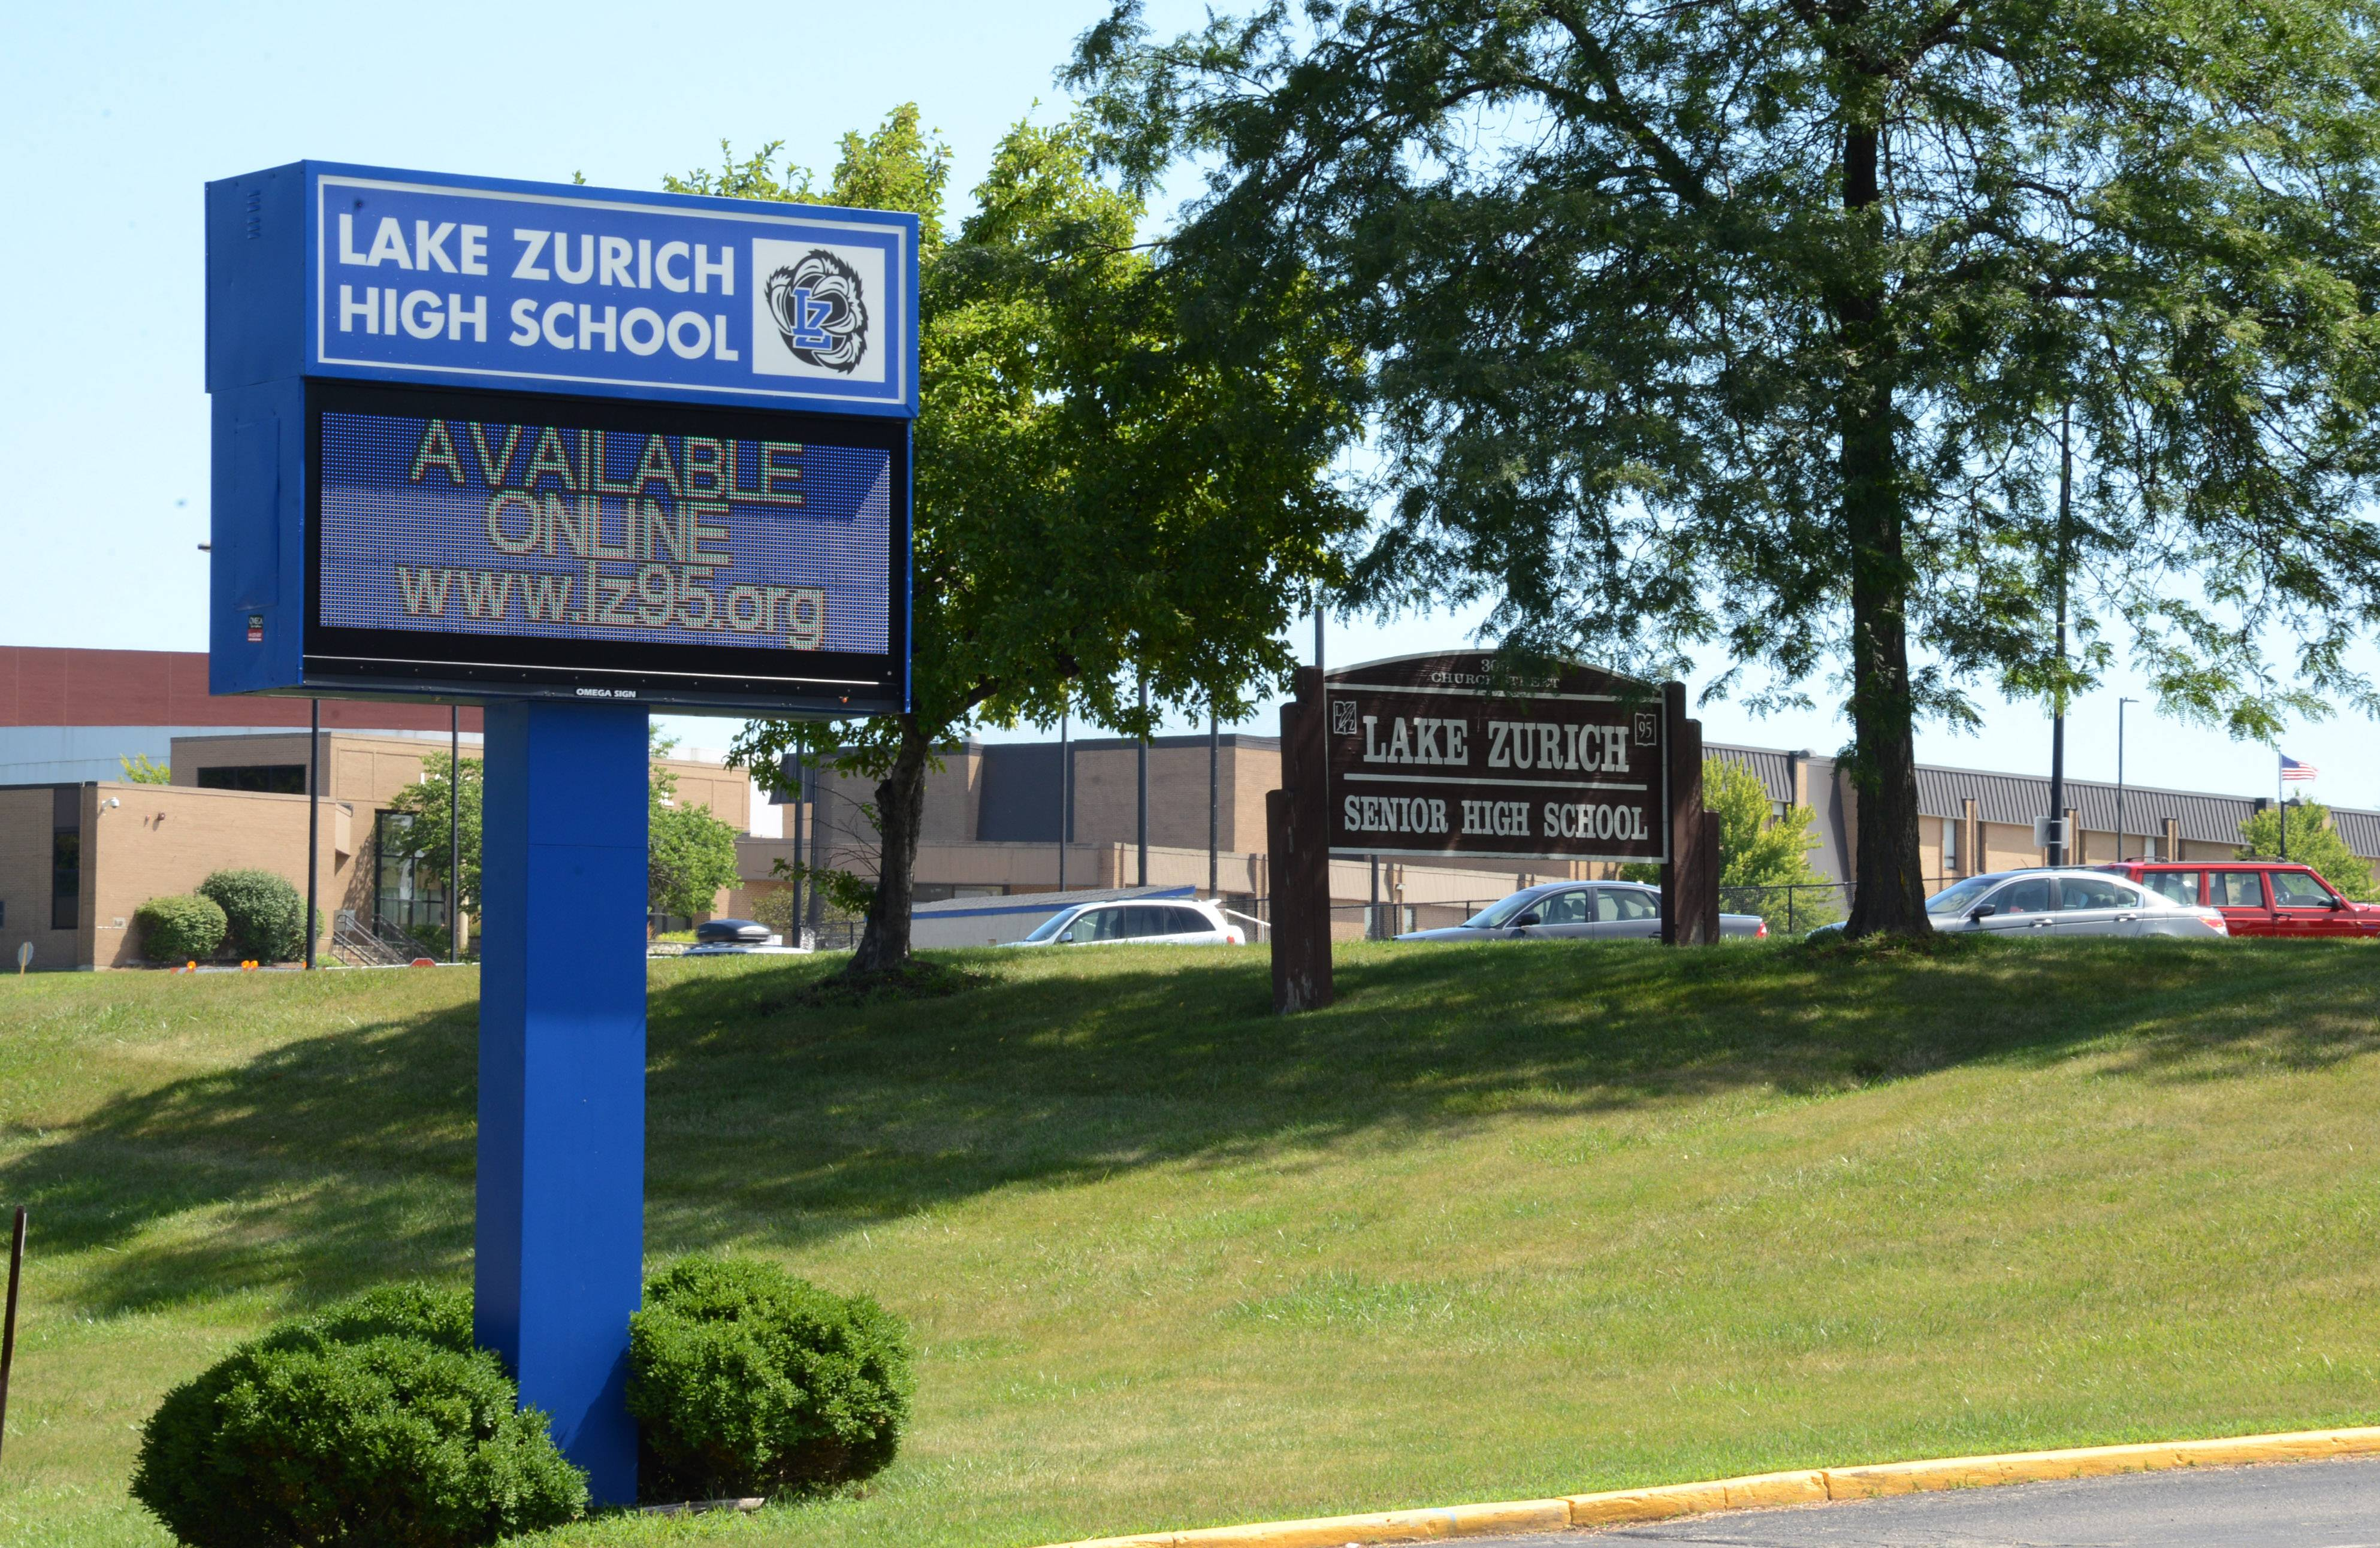 Inverness detective named in Lake Zurich football hazing lawsuit